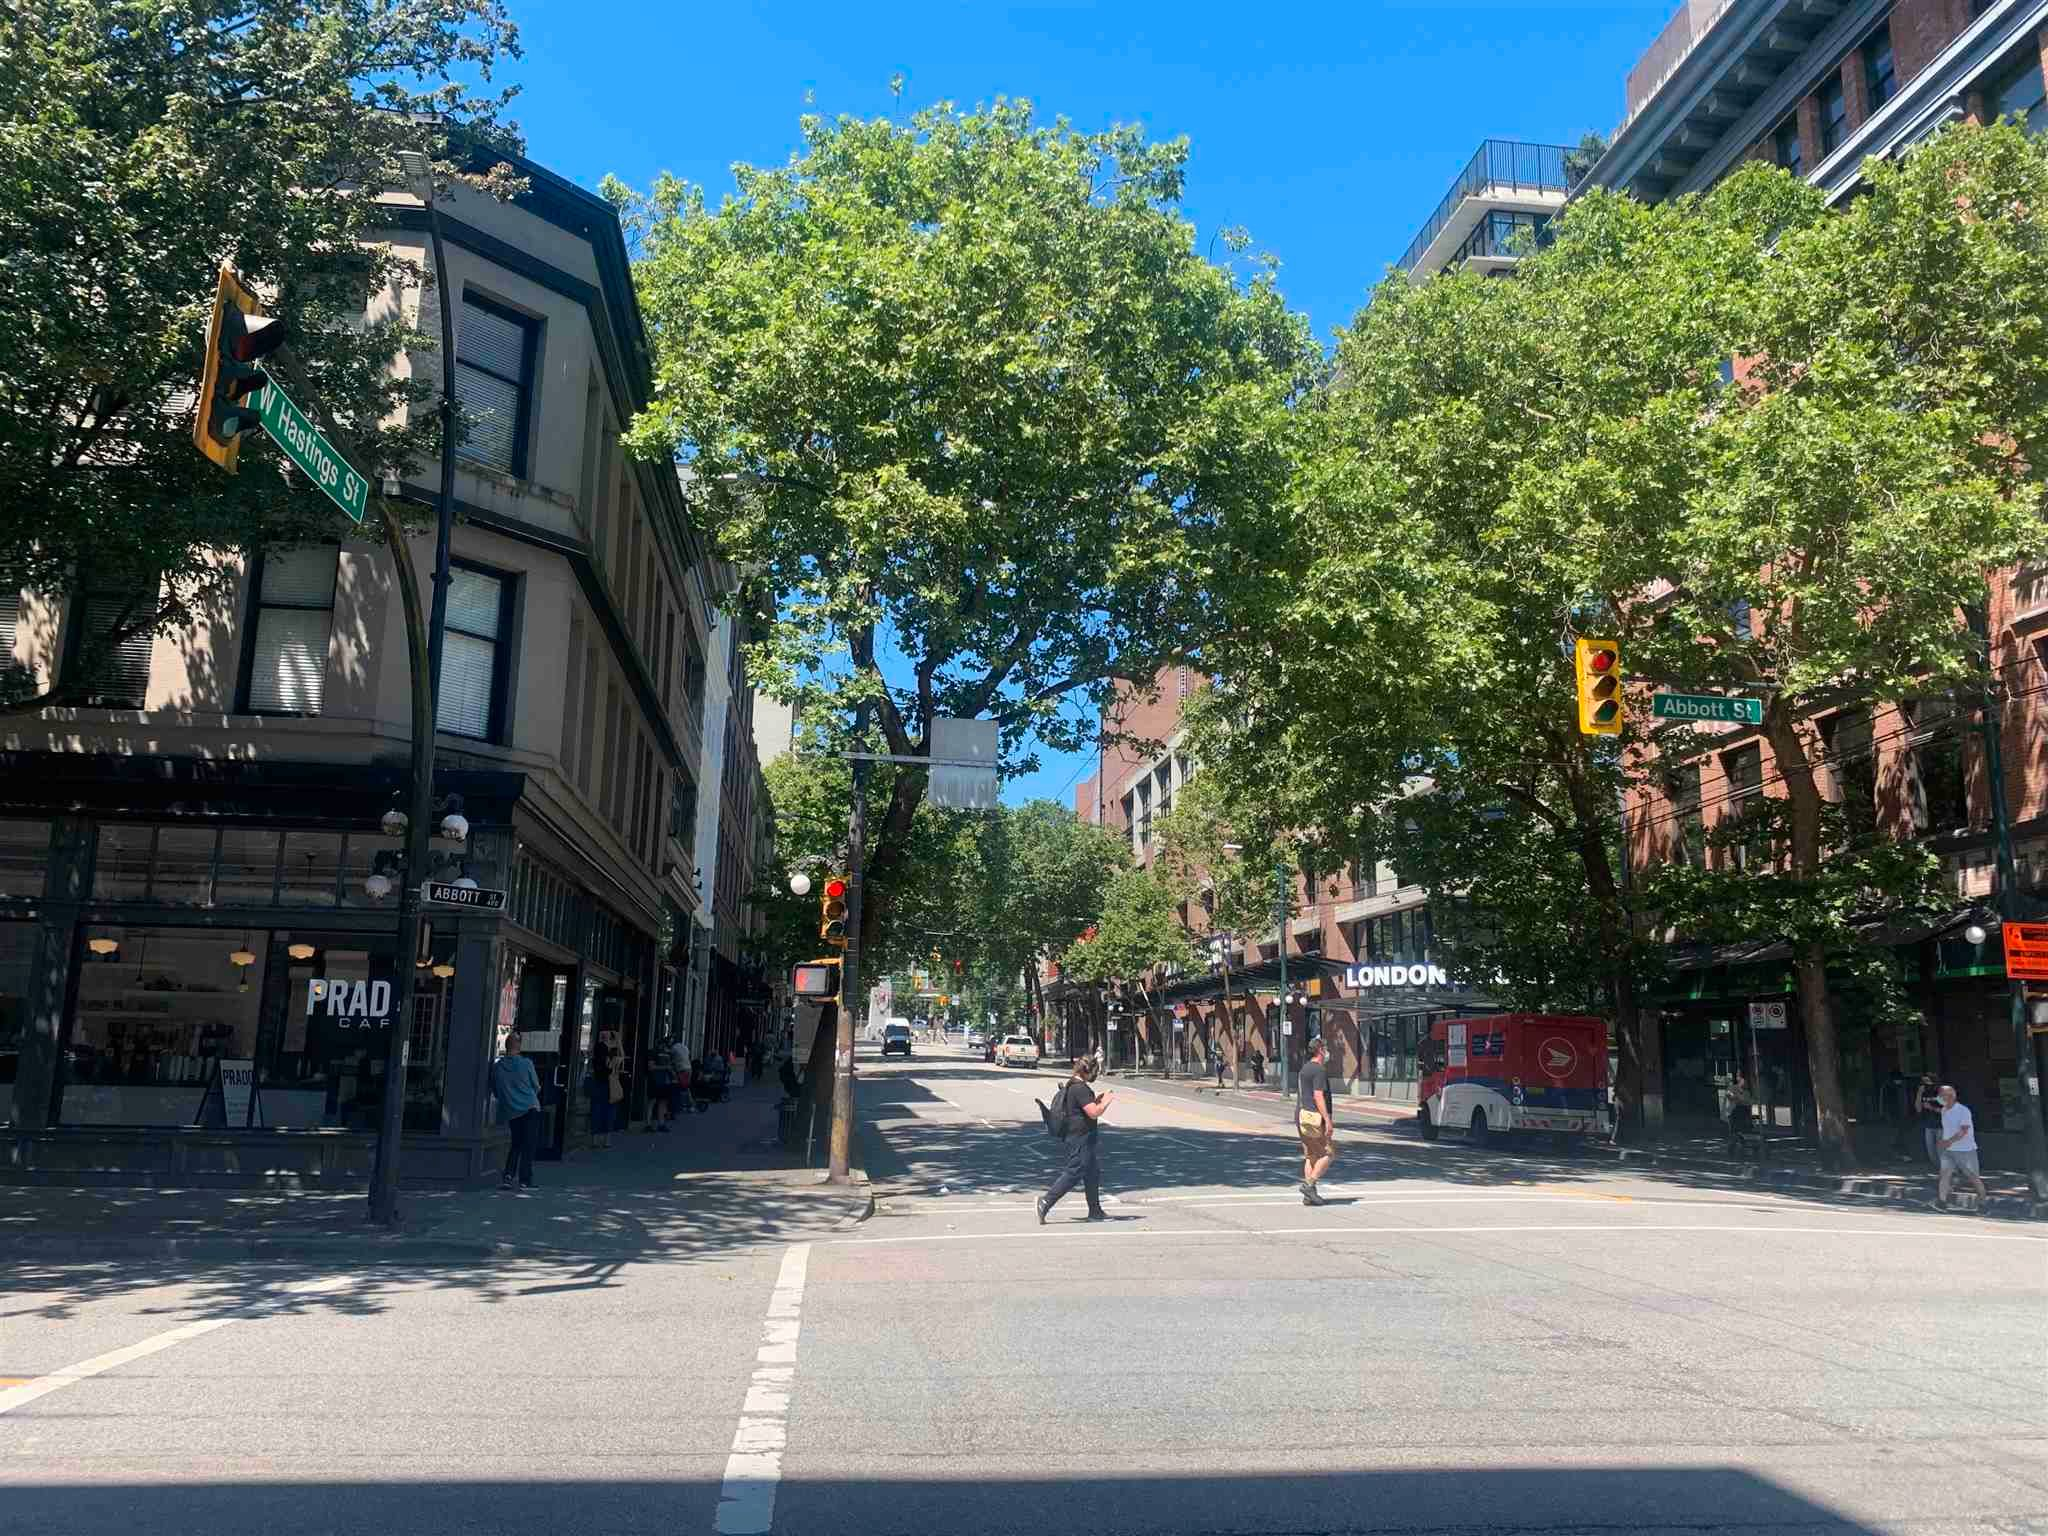 Main Photo: 100 W HASTINGS Street in Vancouver: Downtown VW Business for sale (Vancouver West)  : MLS®# C8039556